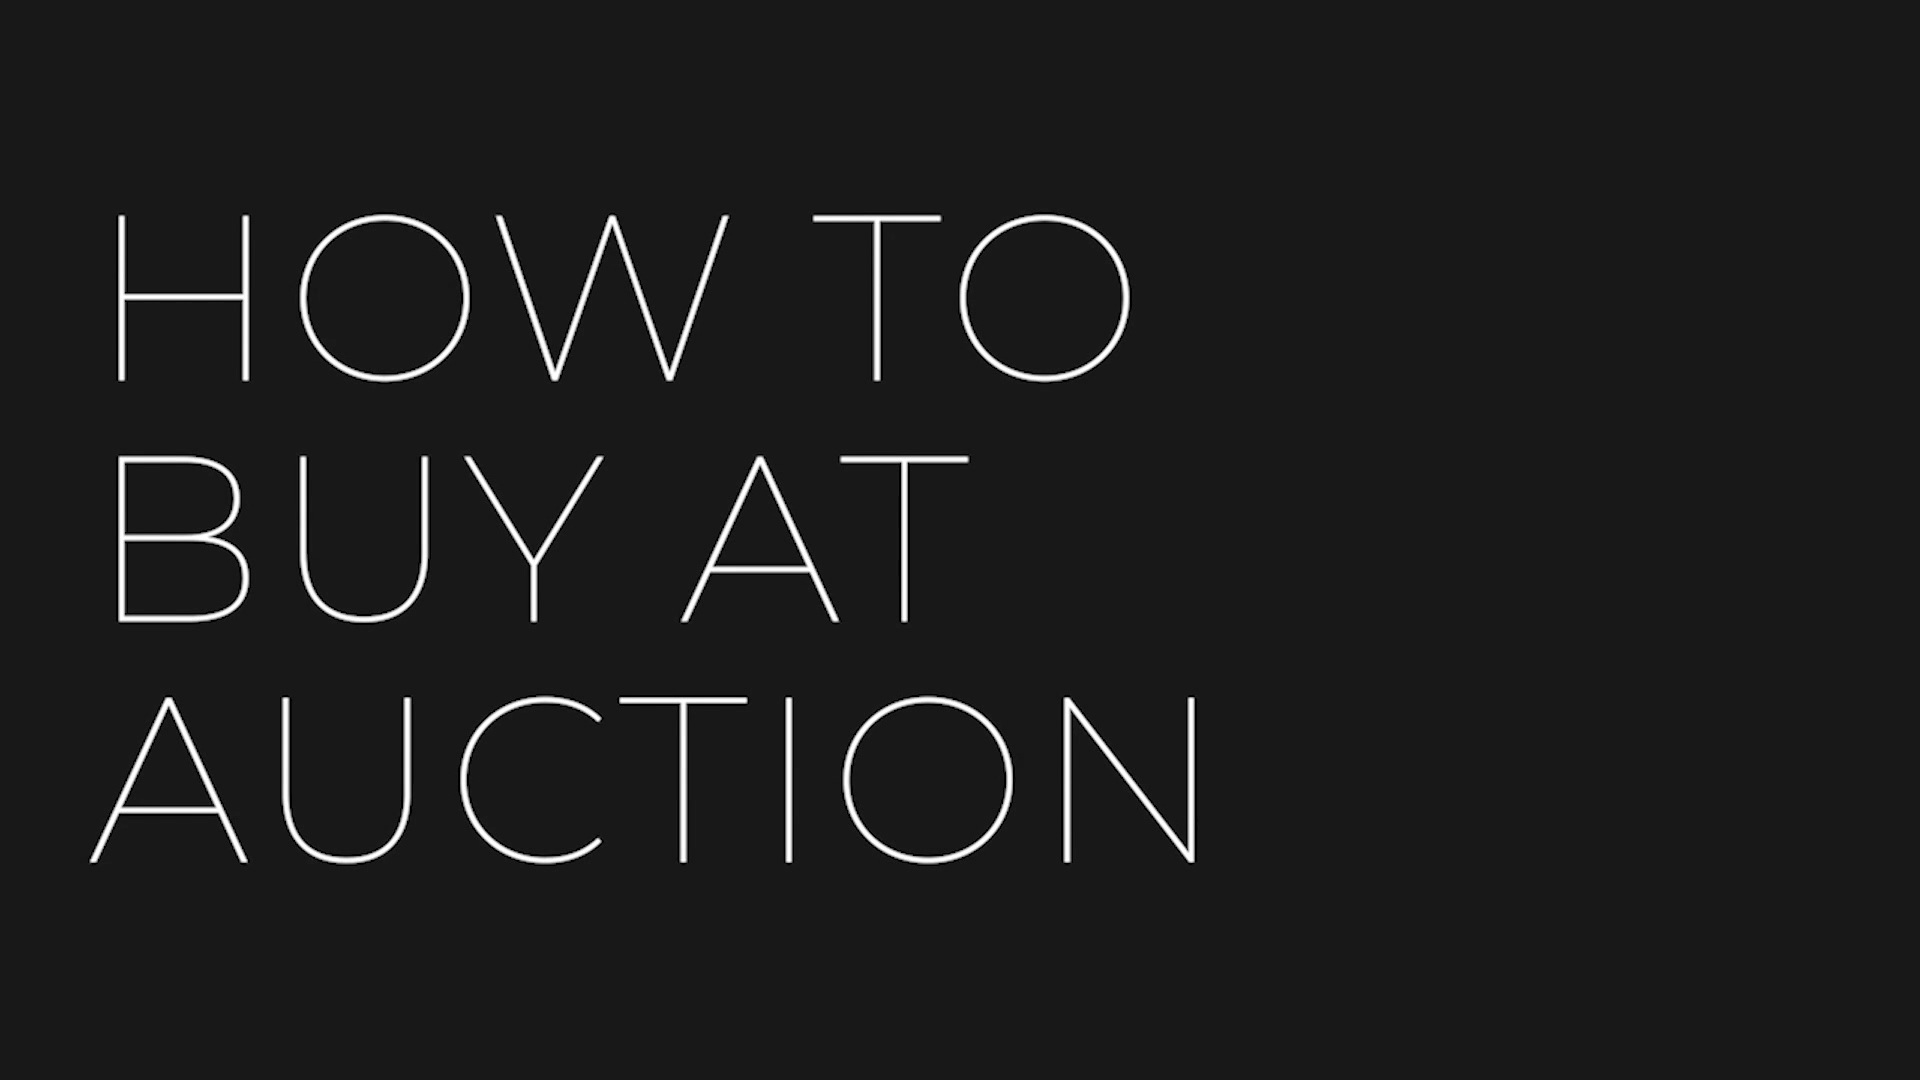 How To Buy at Auction